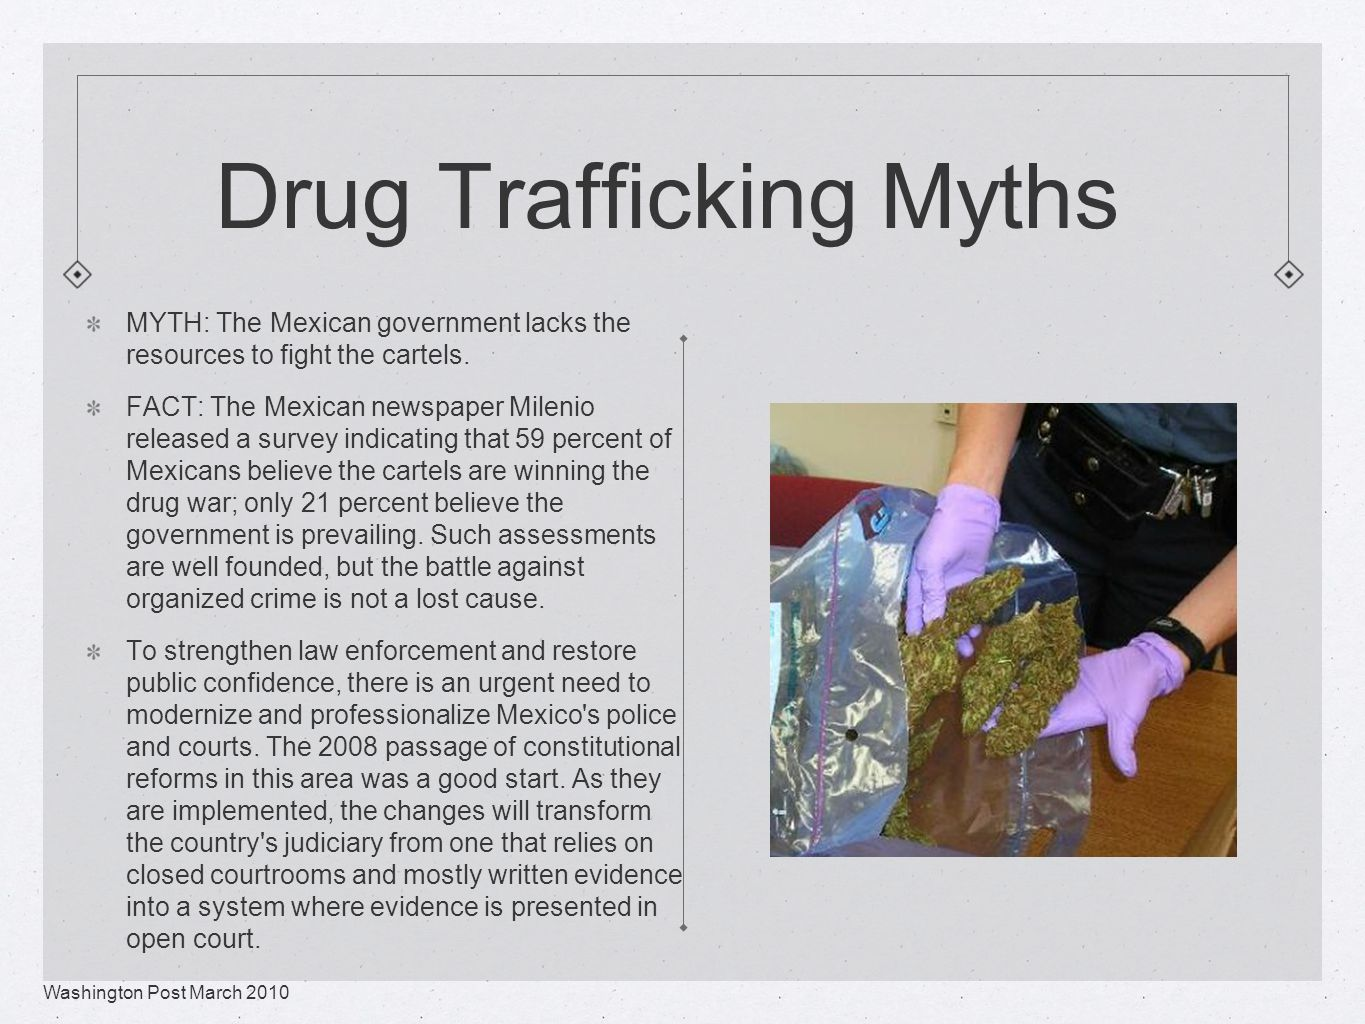 Drug Trafficking Myths MYTH: The Mexican government lacks the resources to fight the cartels.